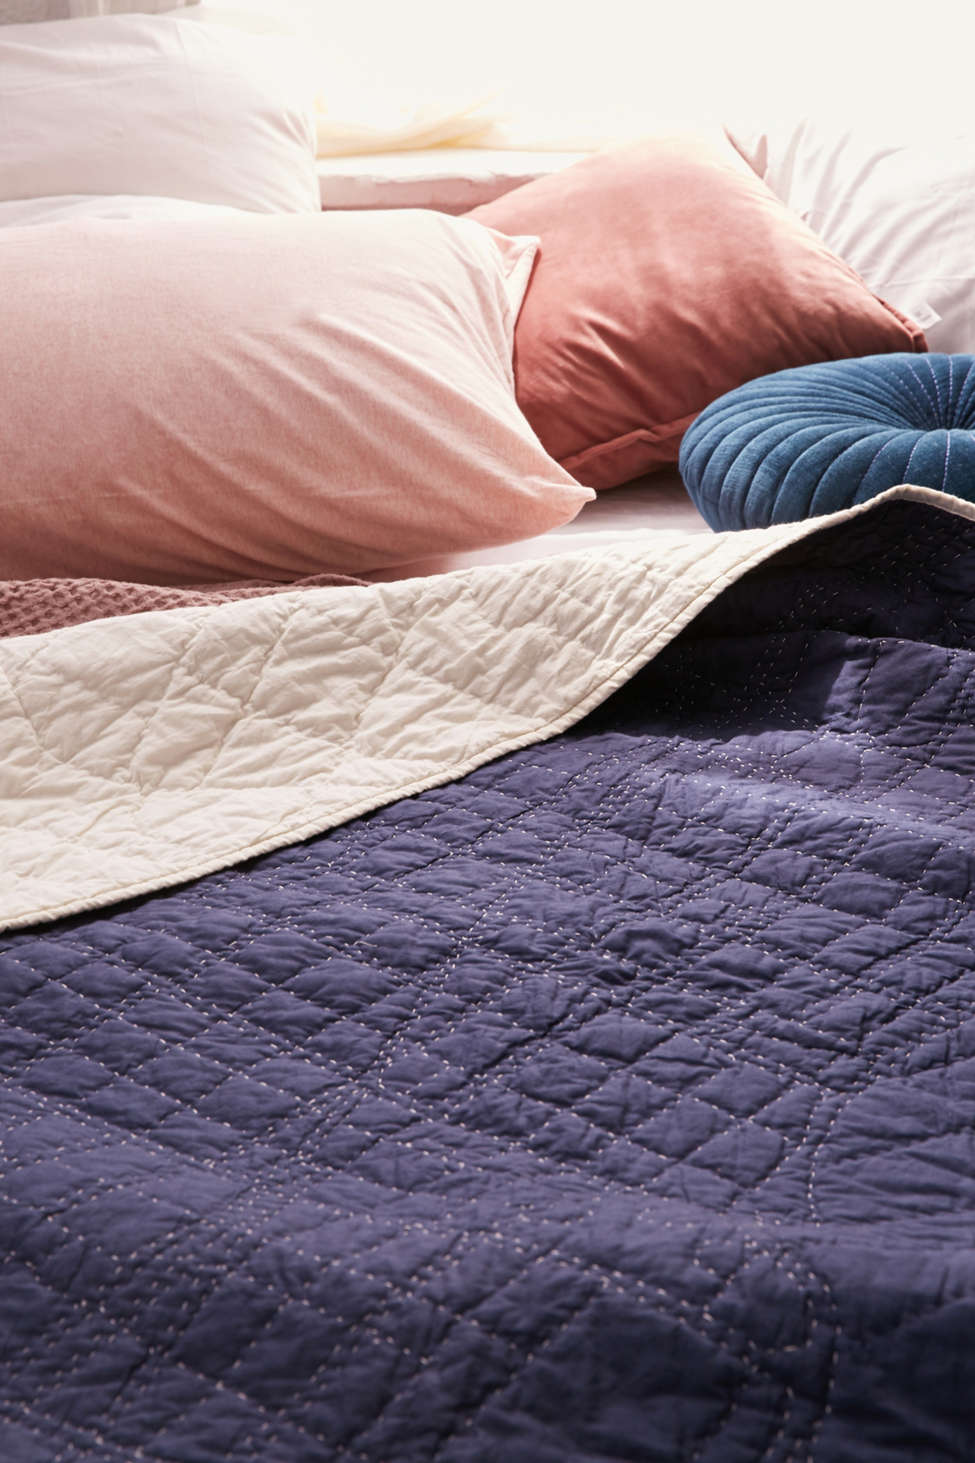 Slide View: 1: Haptic Lab NYC City Lines Quilted Throw Blanket